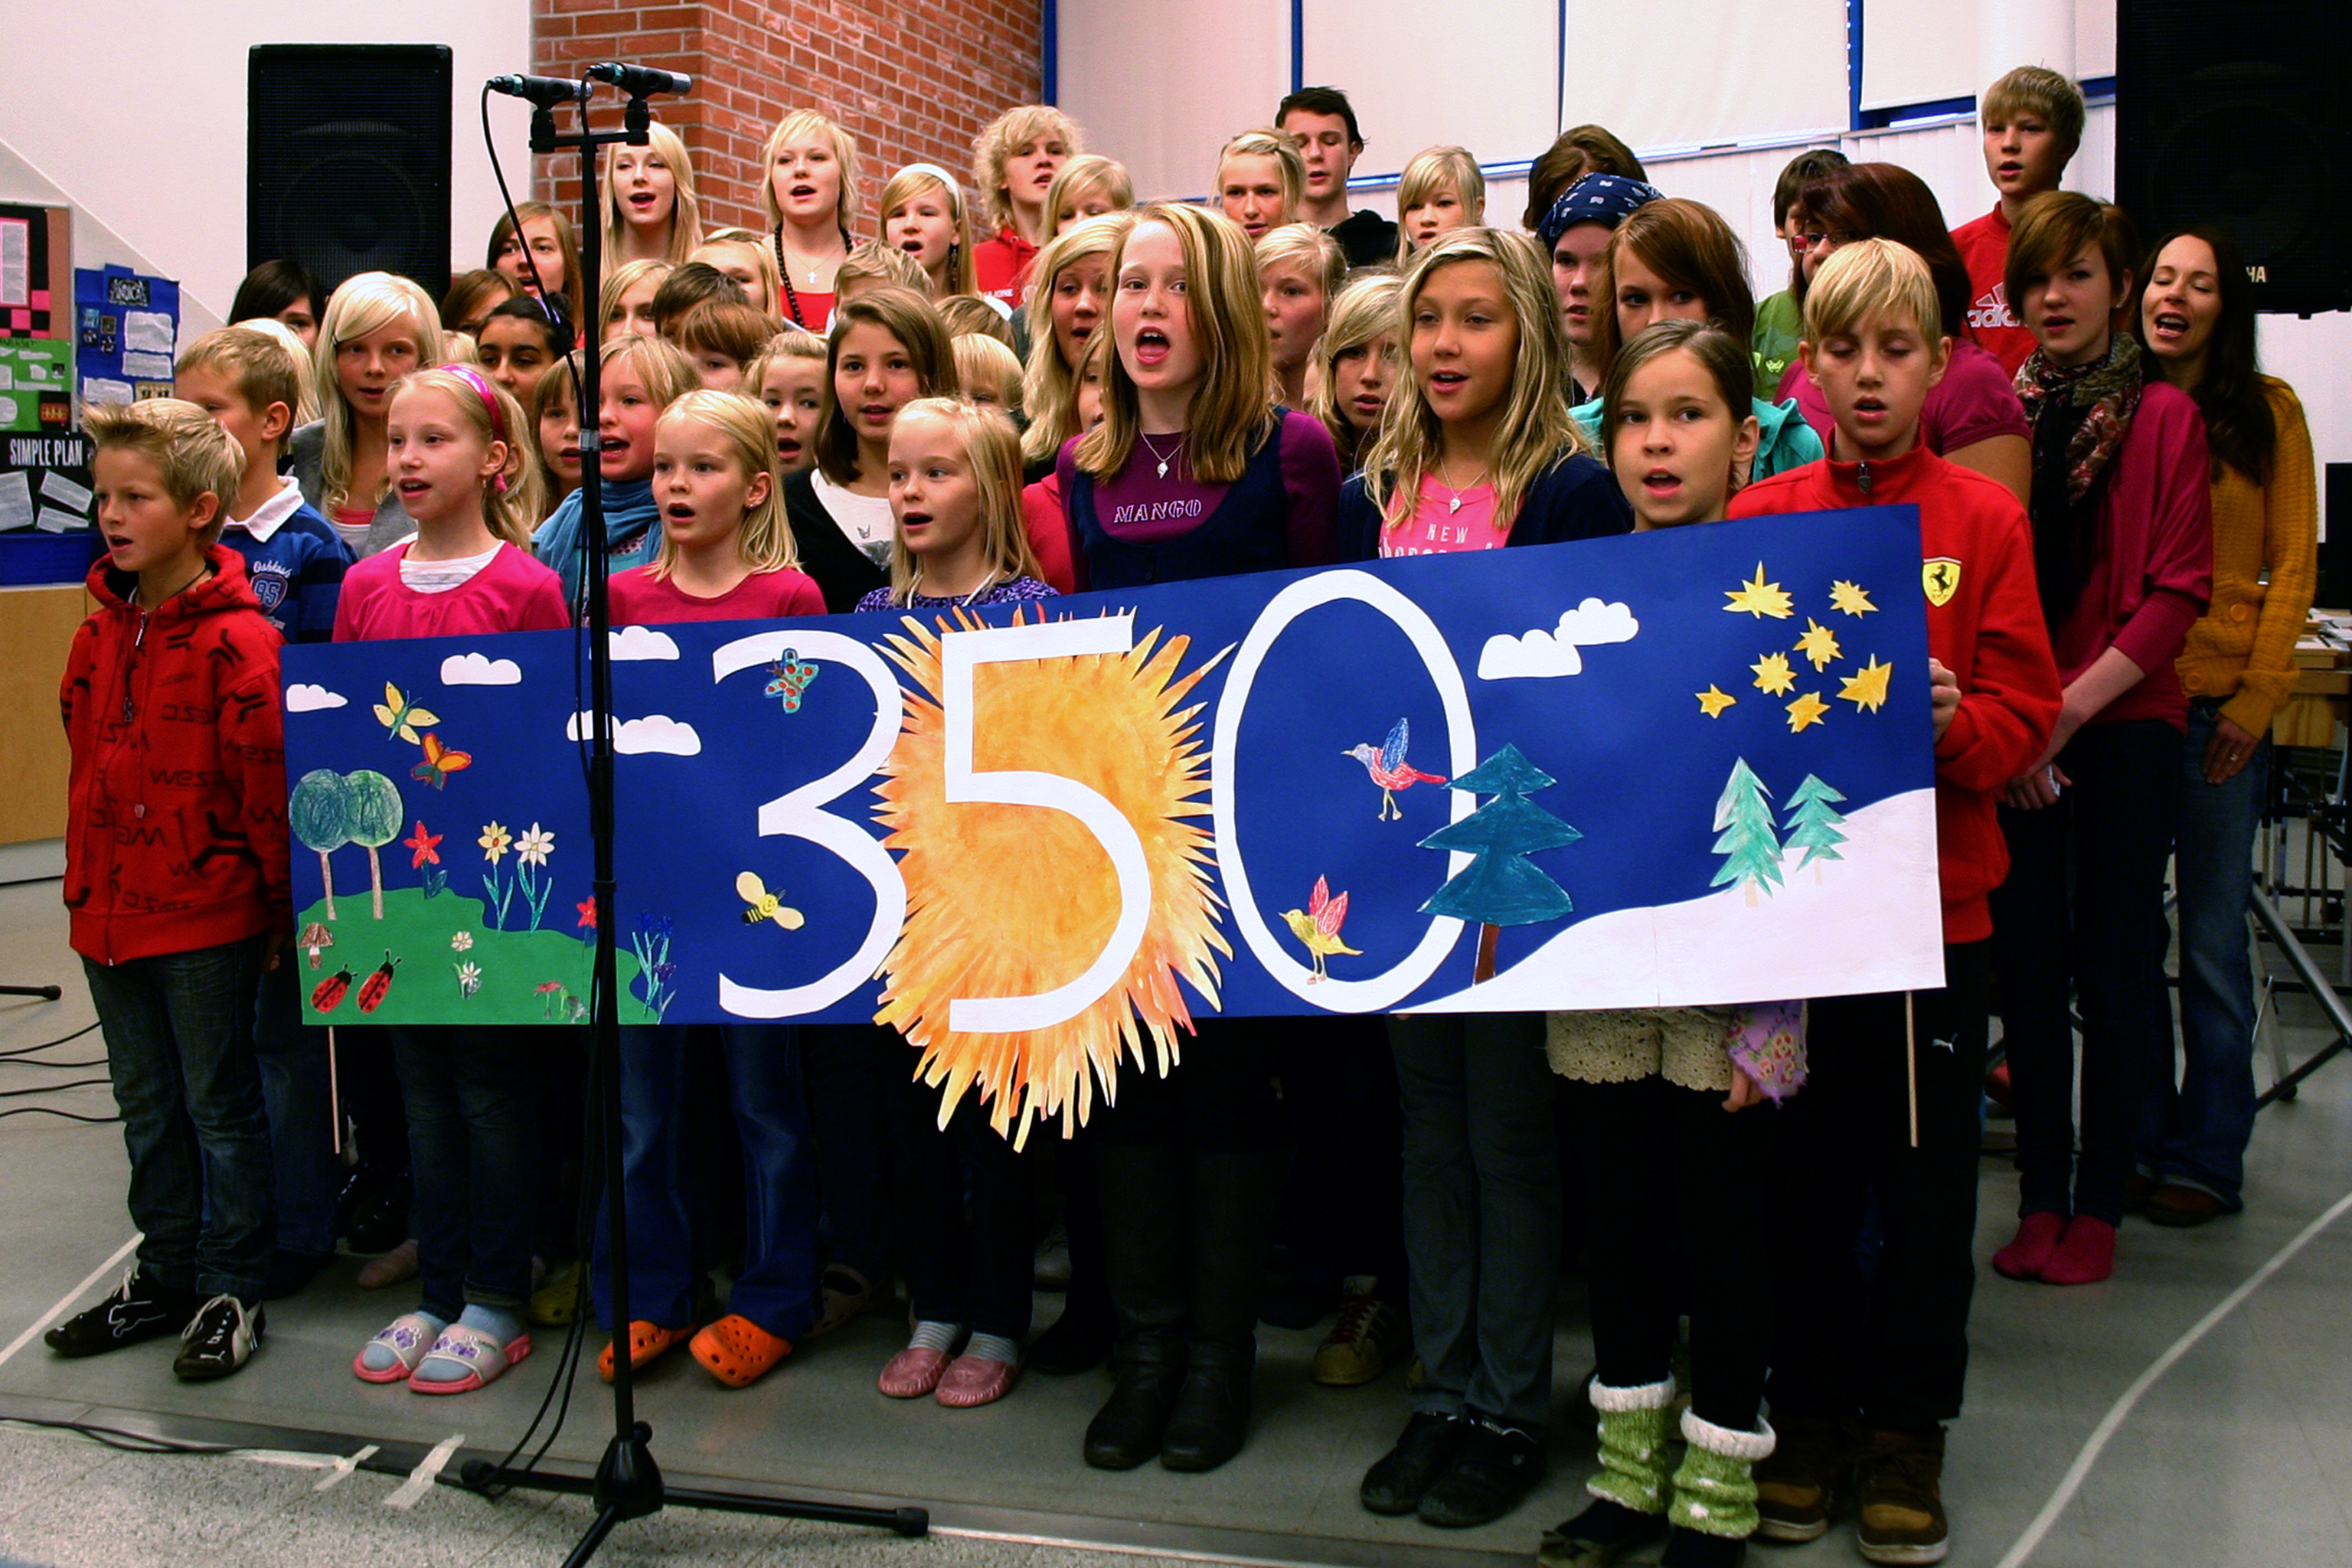 """Children in a Finnish school choir perform a song called """"The Time Is Now"""" on their Climate Action Day. Photo by Aapo-Lassi Kankaala/Flickr. https://www.flickr.com/photos/350org/4040191008"""